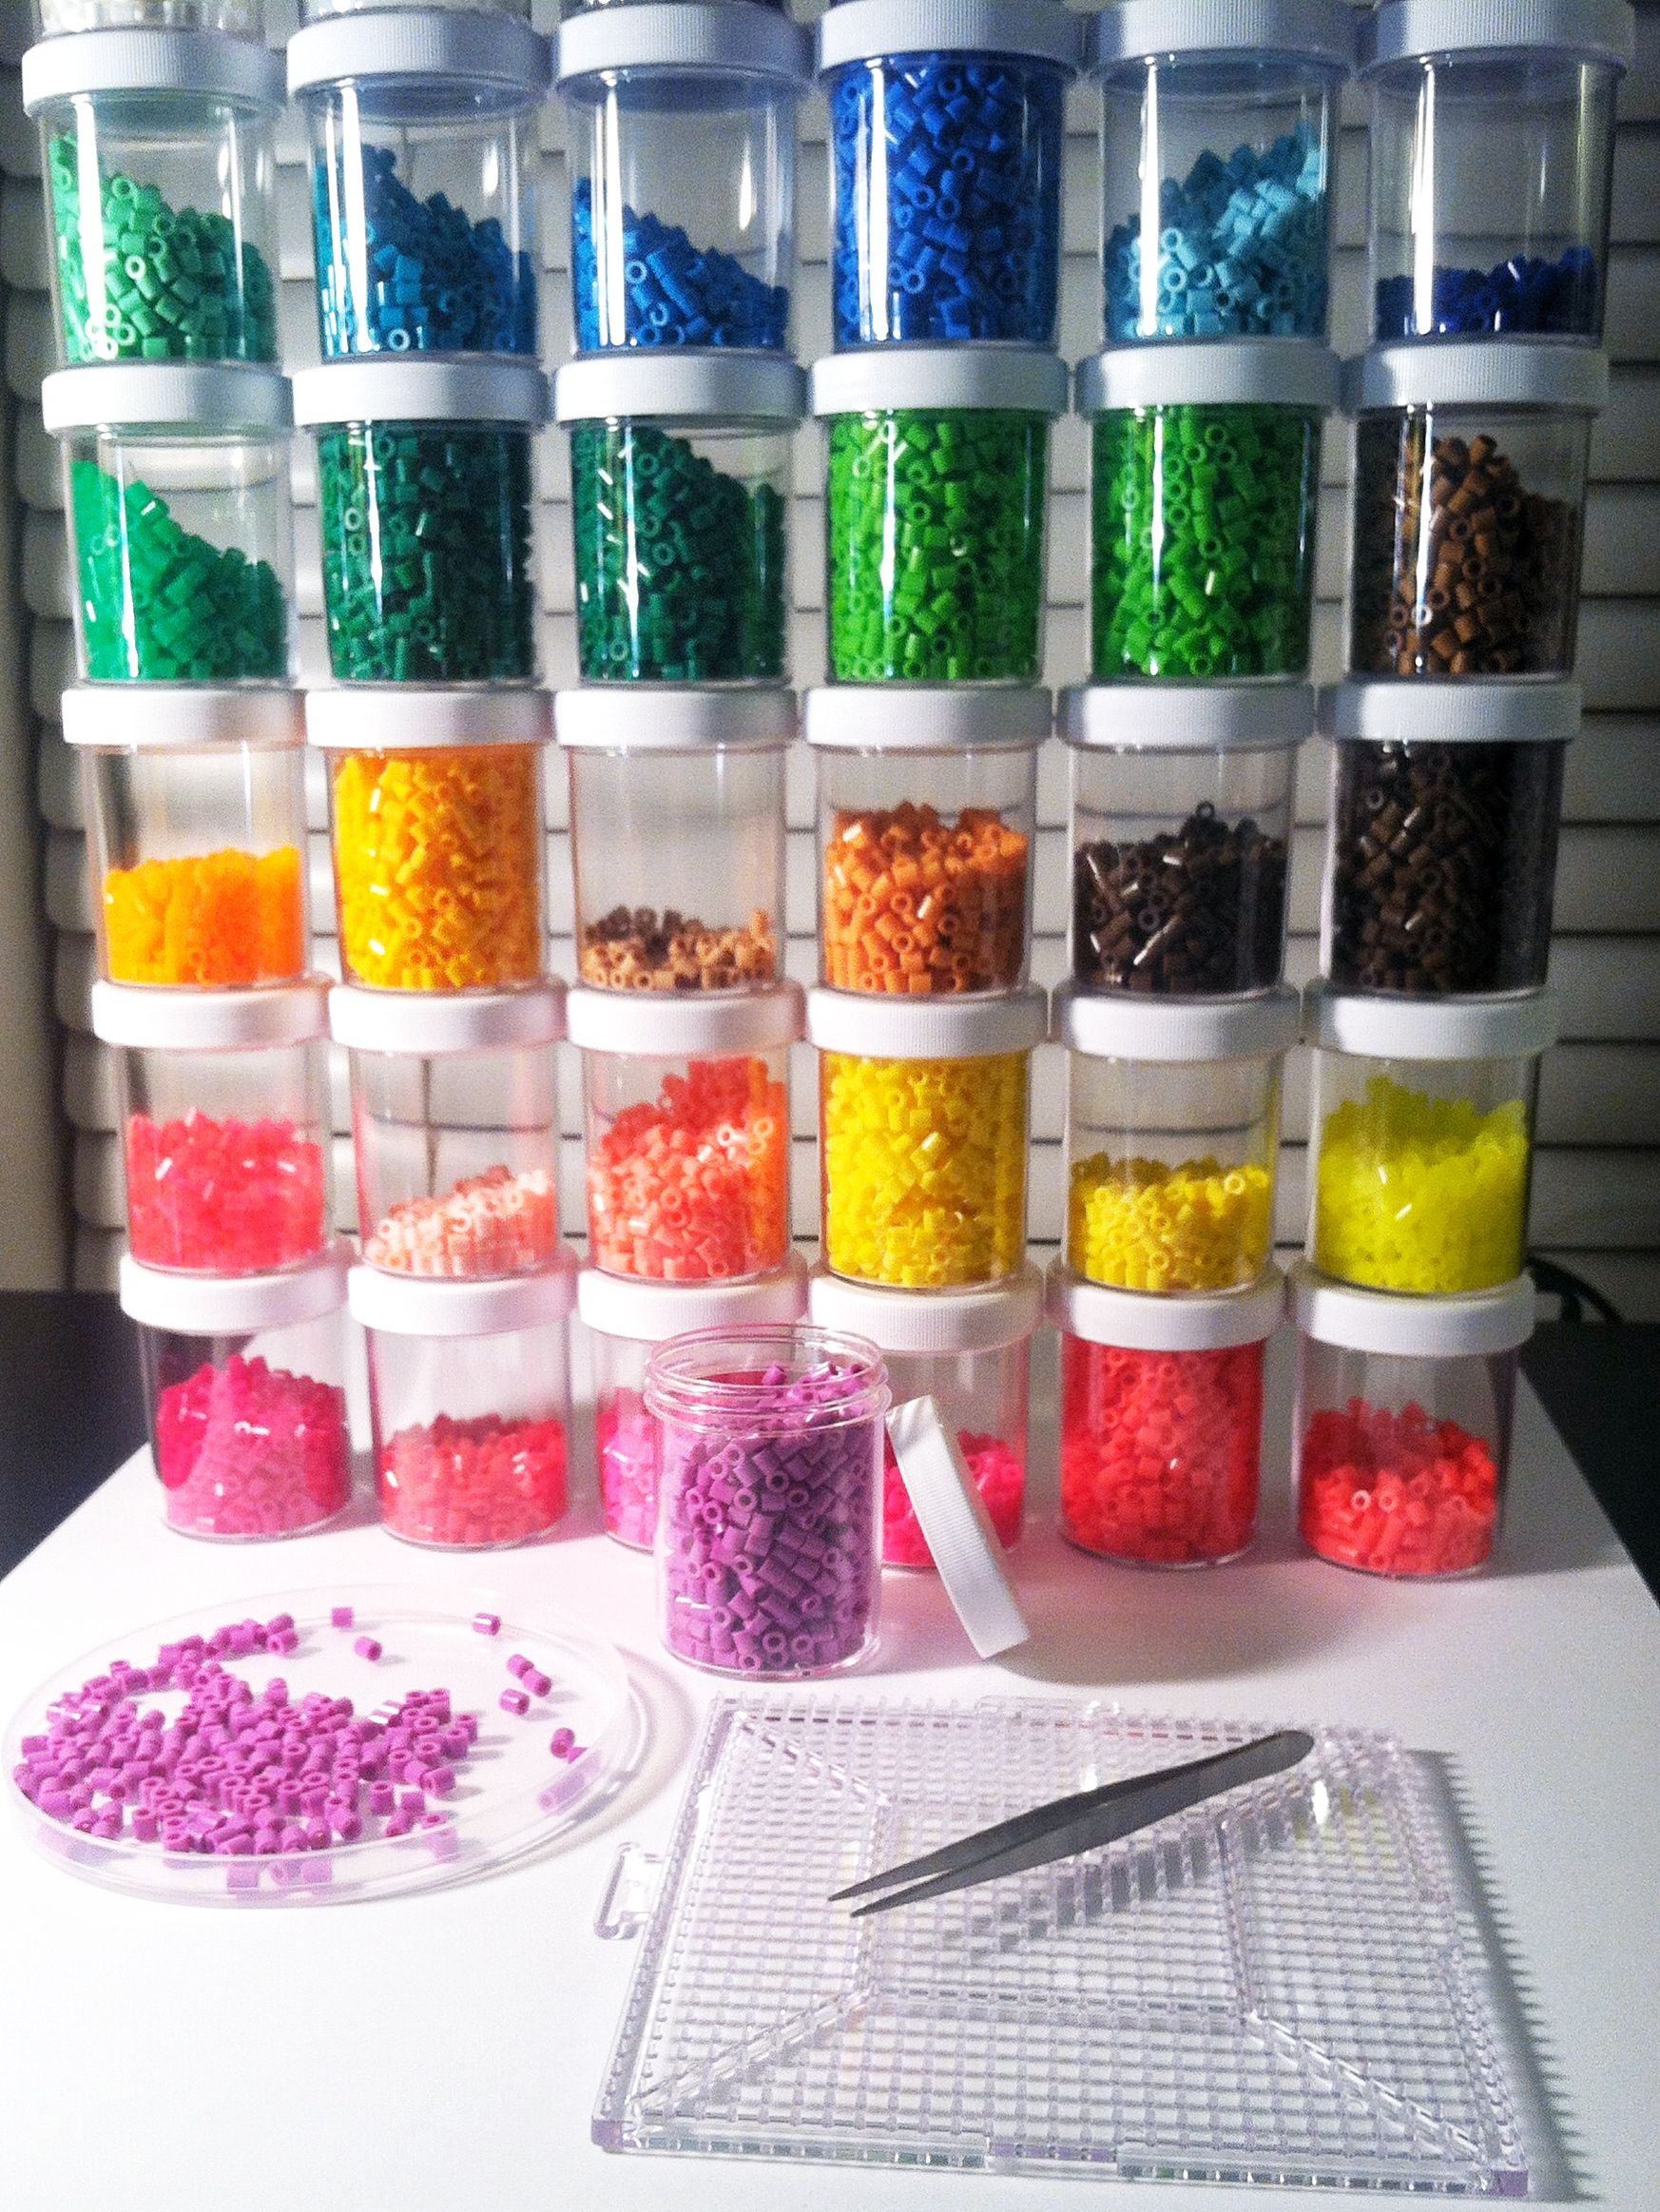 Plastic beads for crafts - Little Jars For Perler Bead Storage About 3in High X 2in Across They Hold